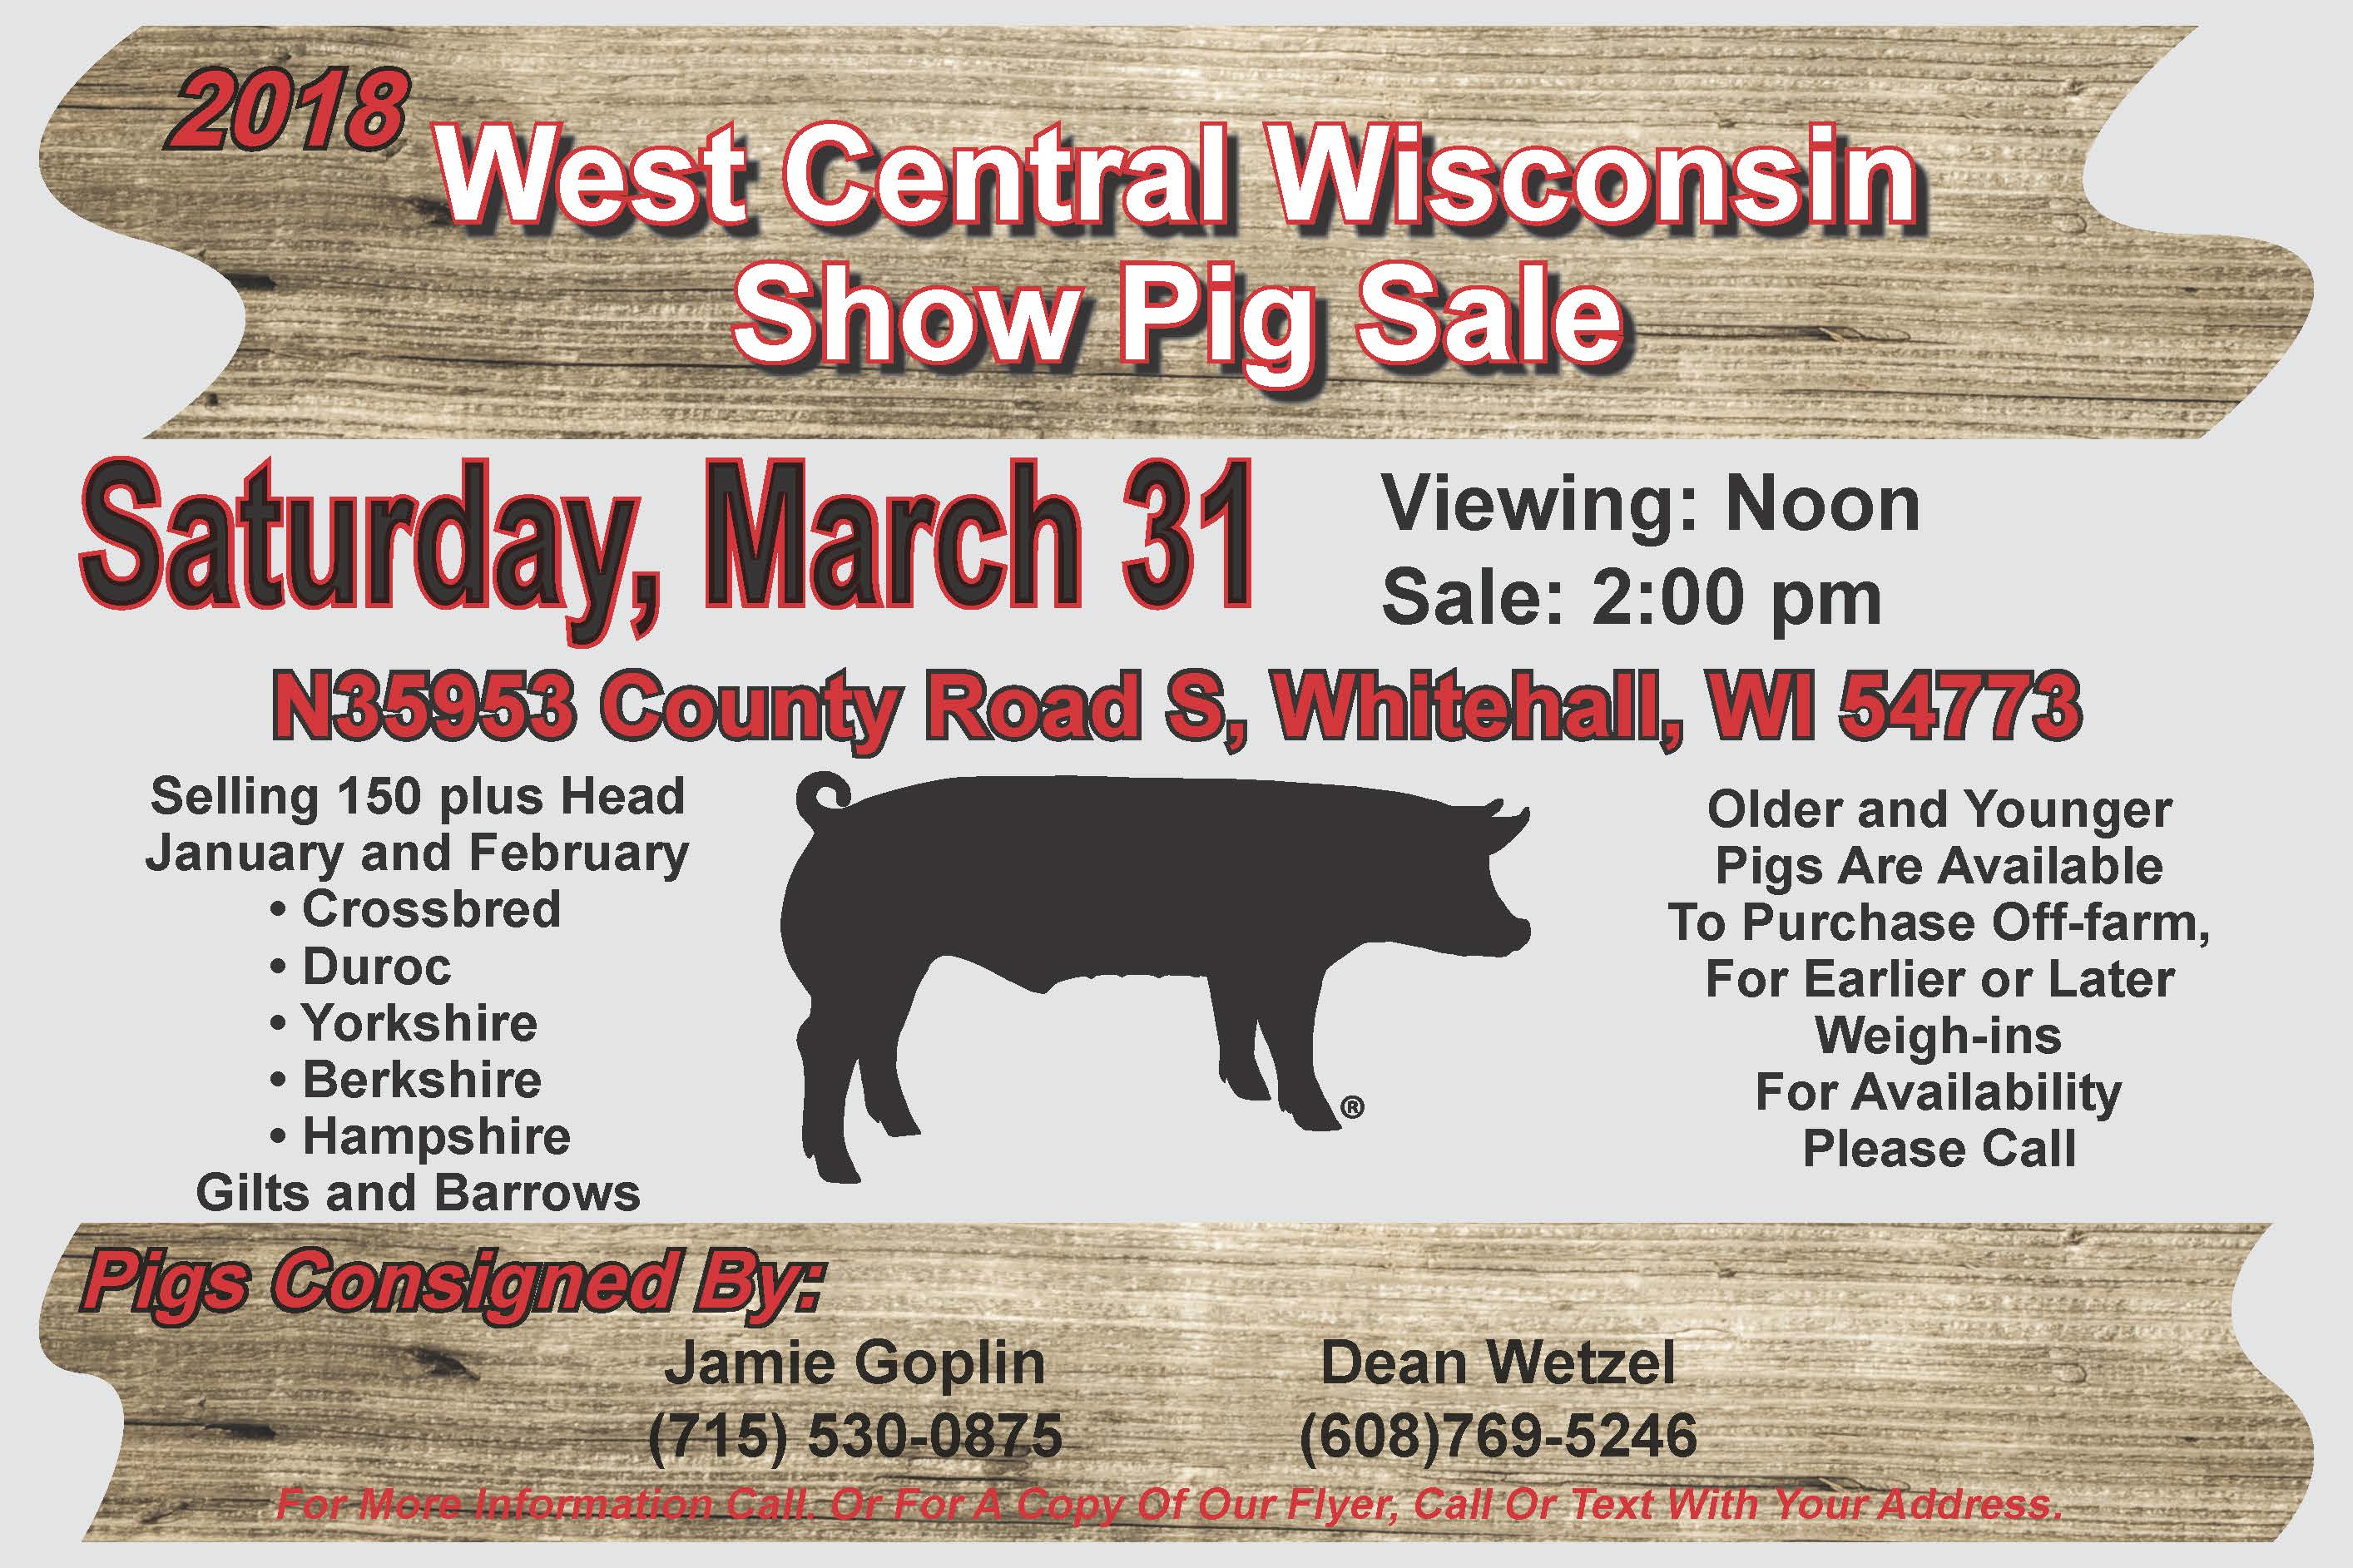 West Central WI Ad 2018 - Wisconsin Pork